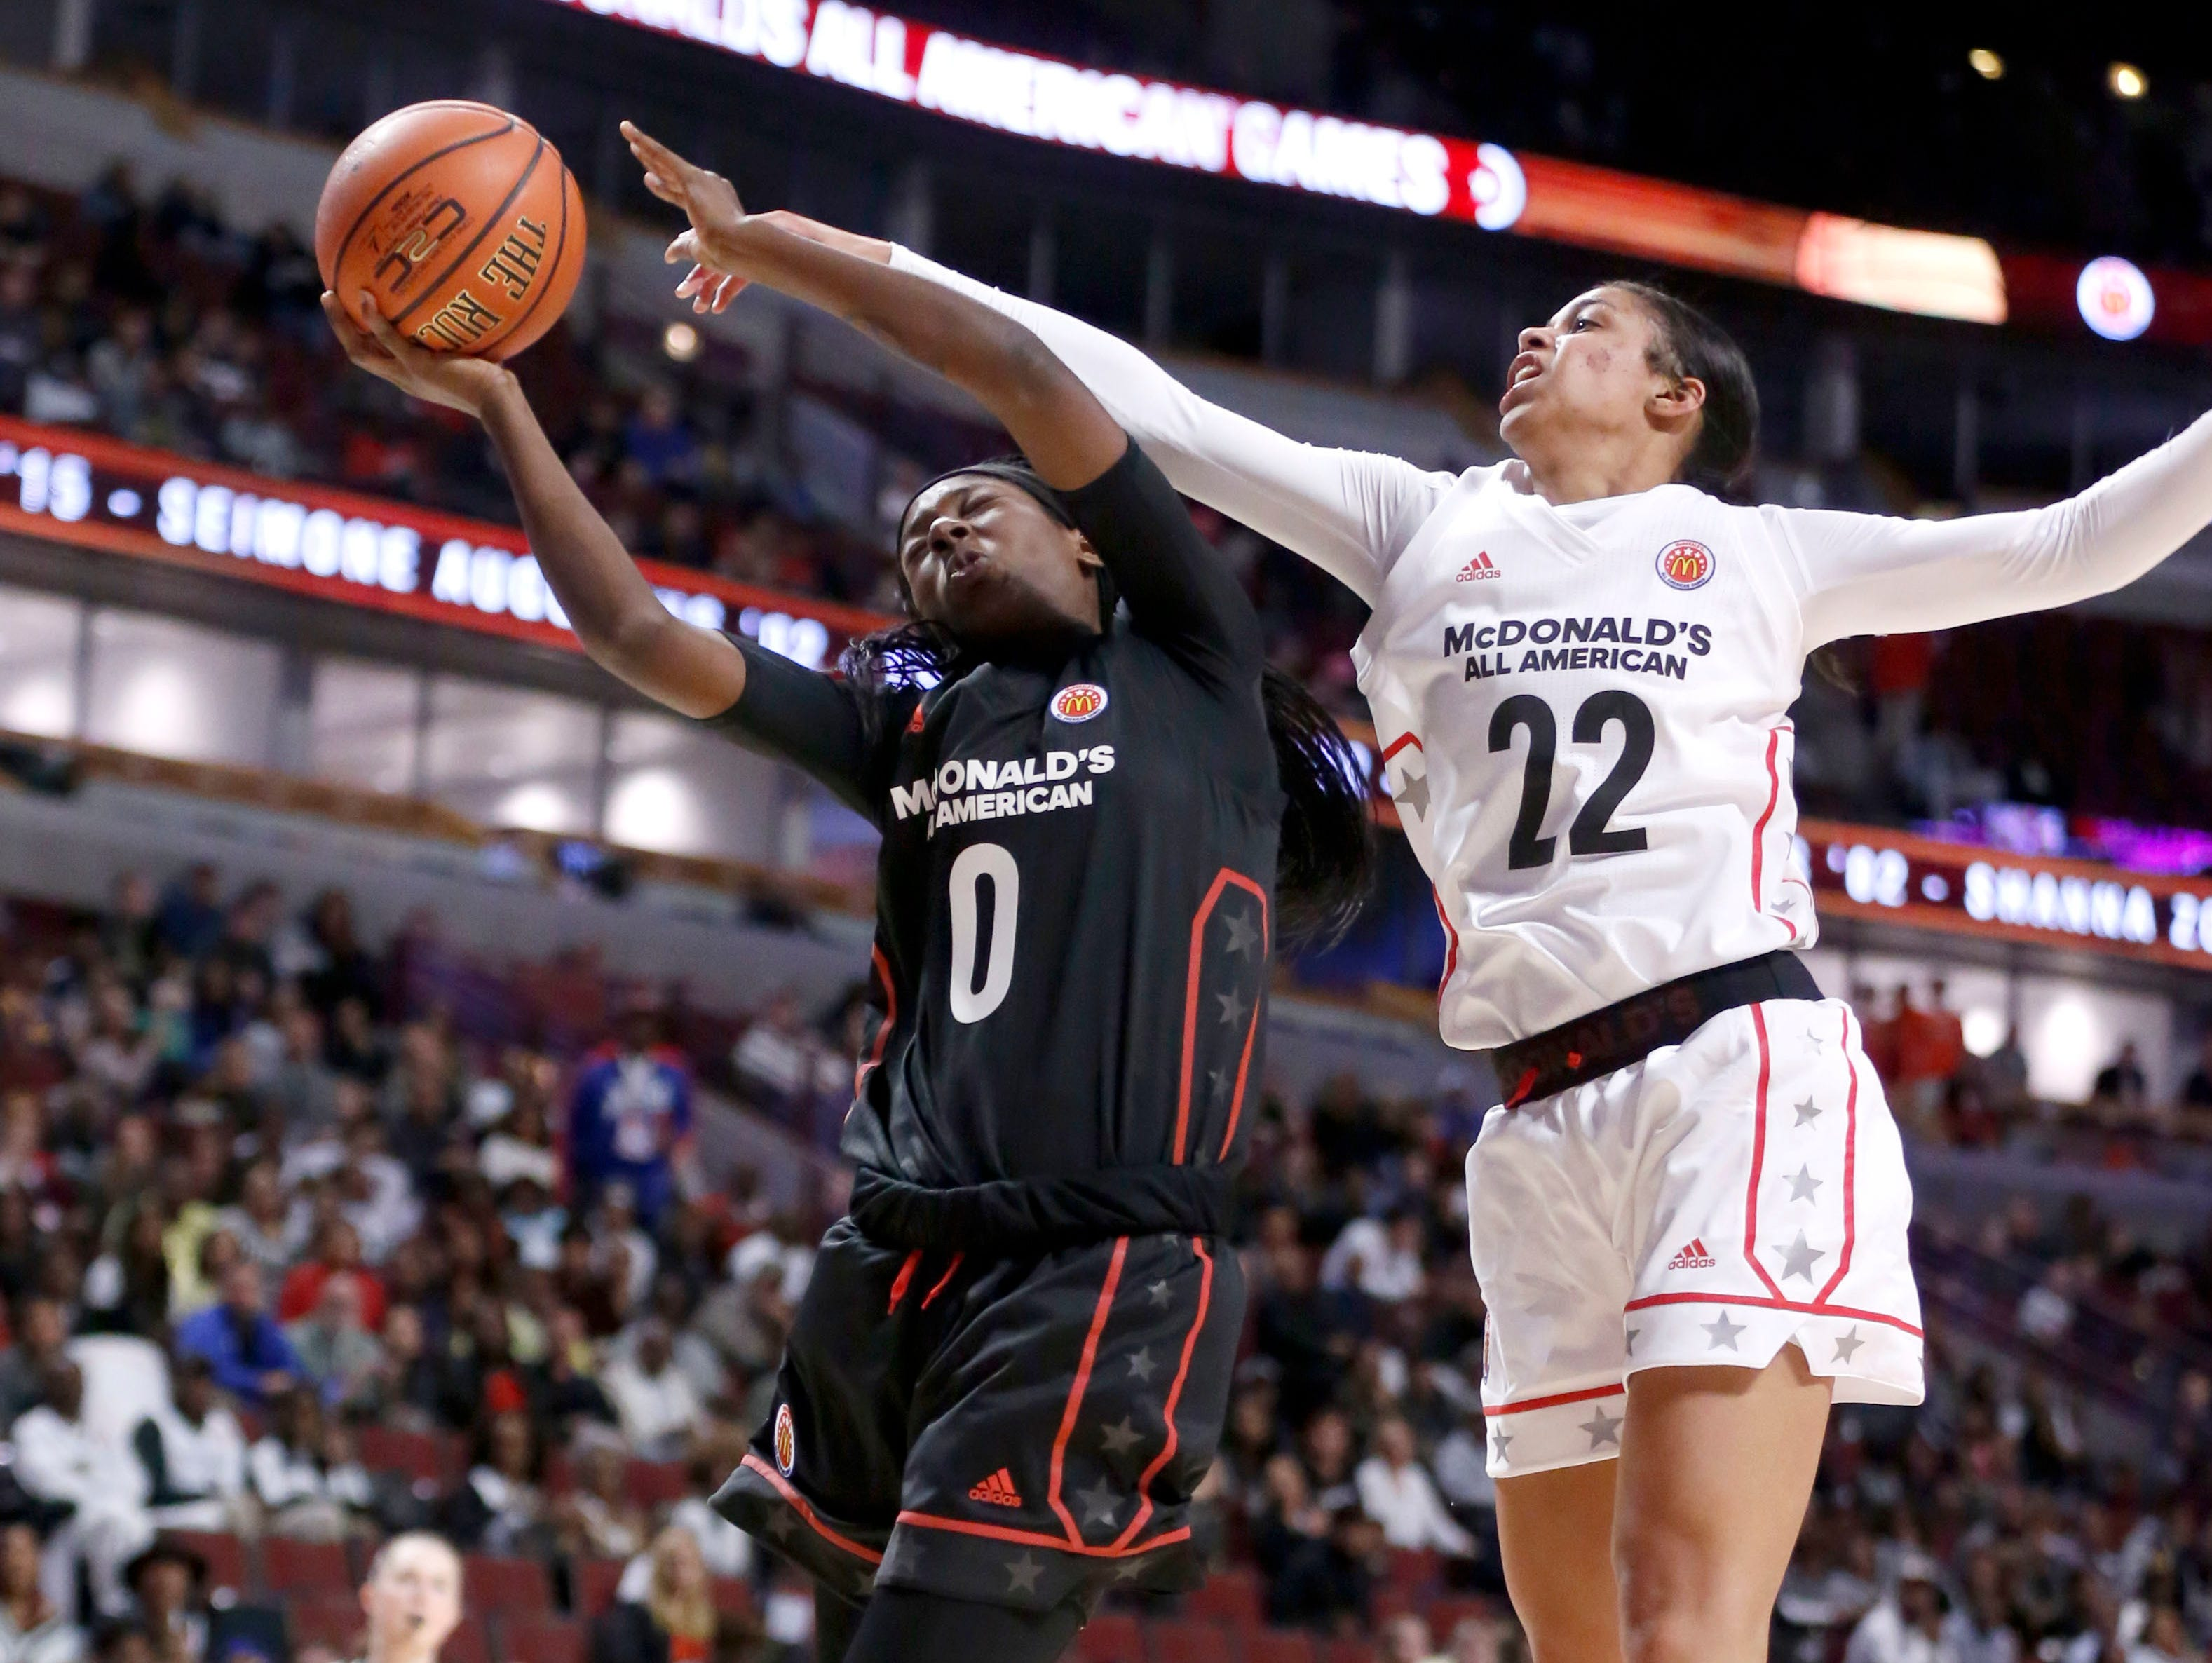 f8c2f2cc11d1 Lady Vols signees have their moments in McDonald s All-American game ...